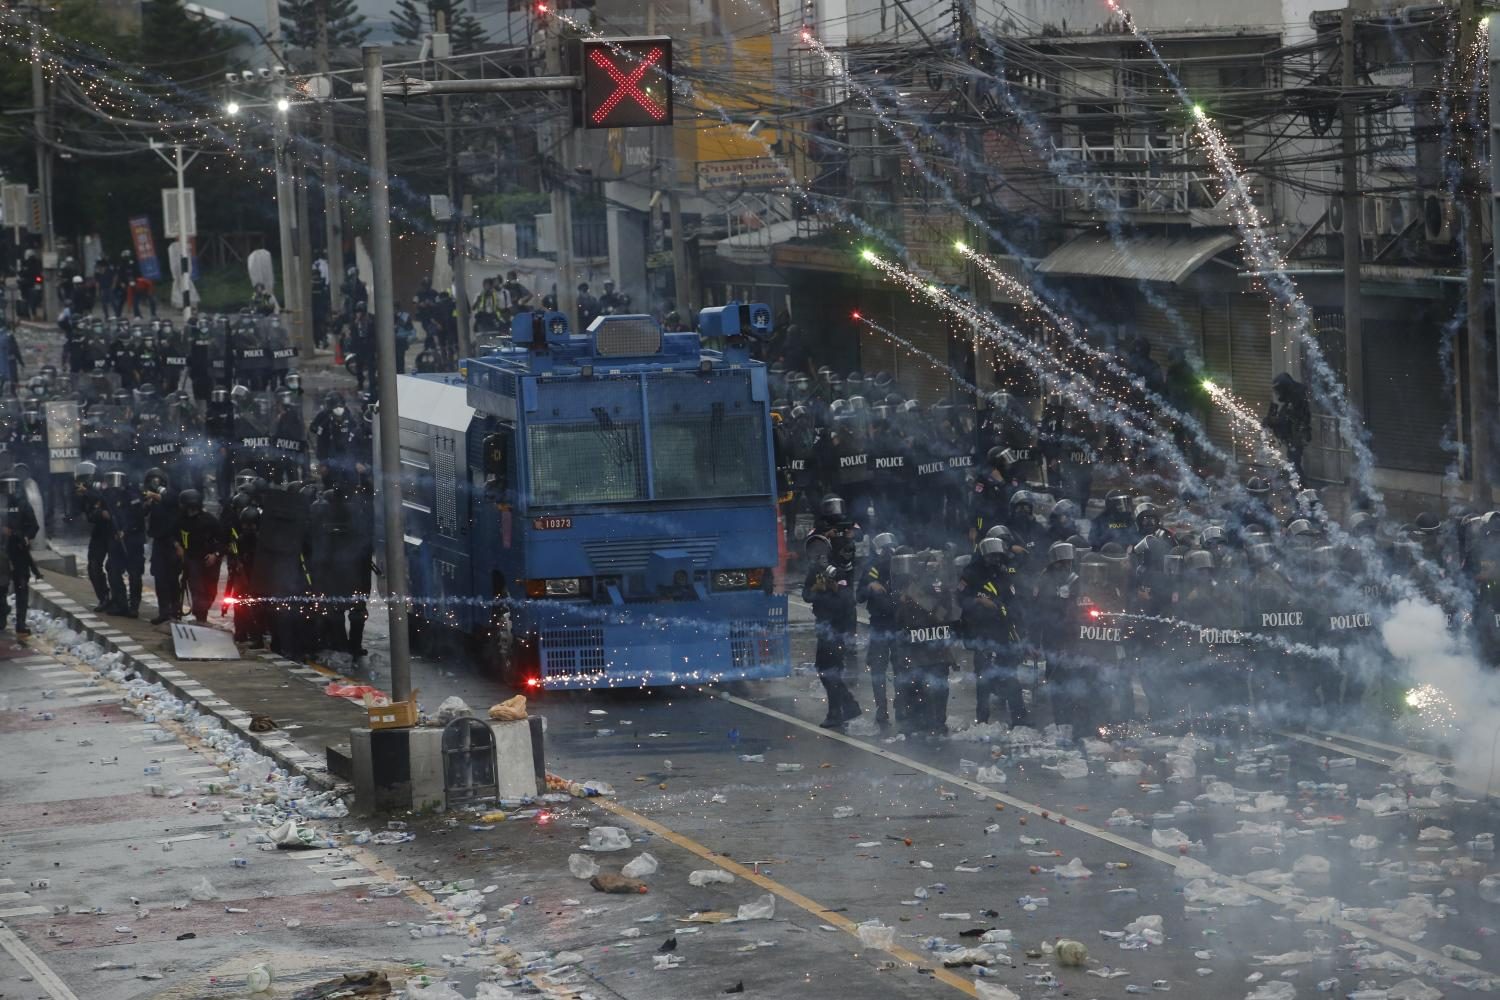 ON COURSE FOR COLLISION: Flares are launched near police during the confrontation between a water cannon truck and protesters near Din Daeng intersection.